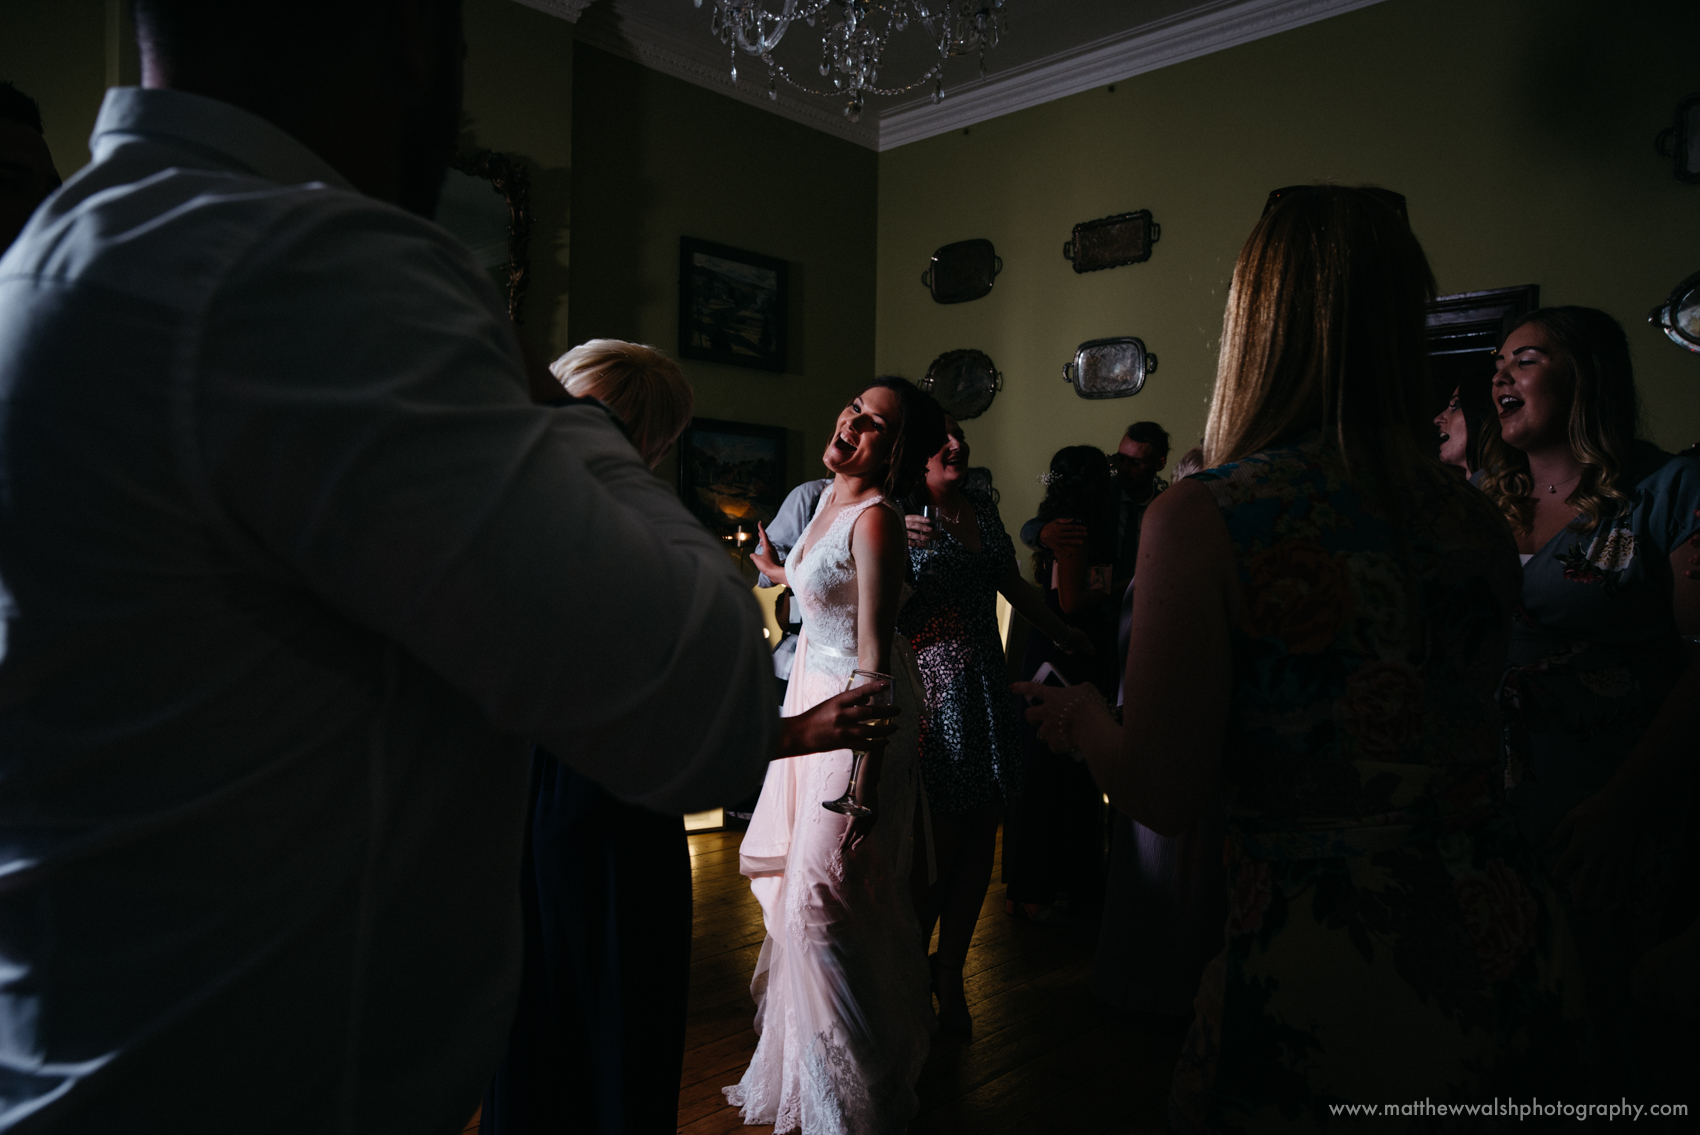 A very happy bride dancing